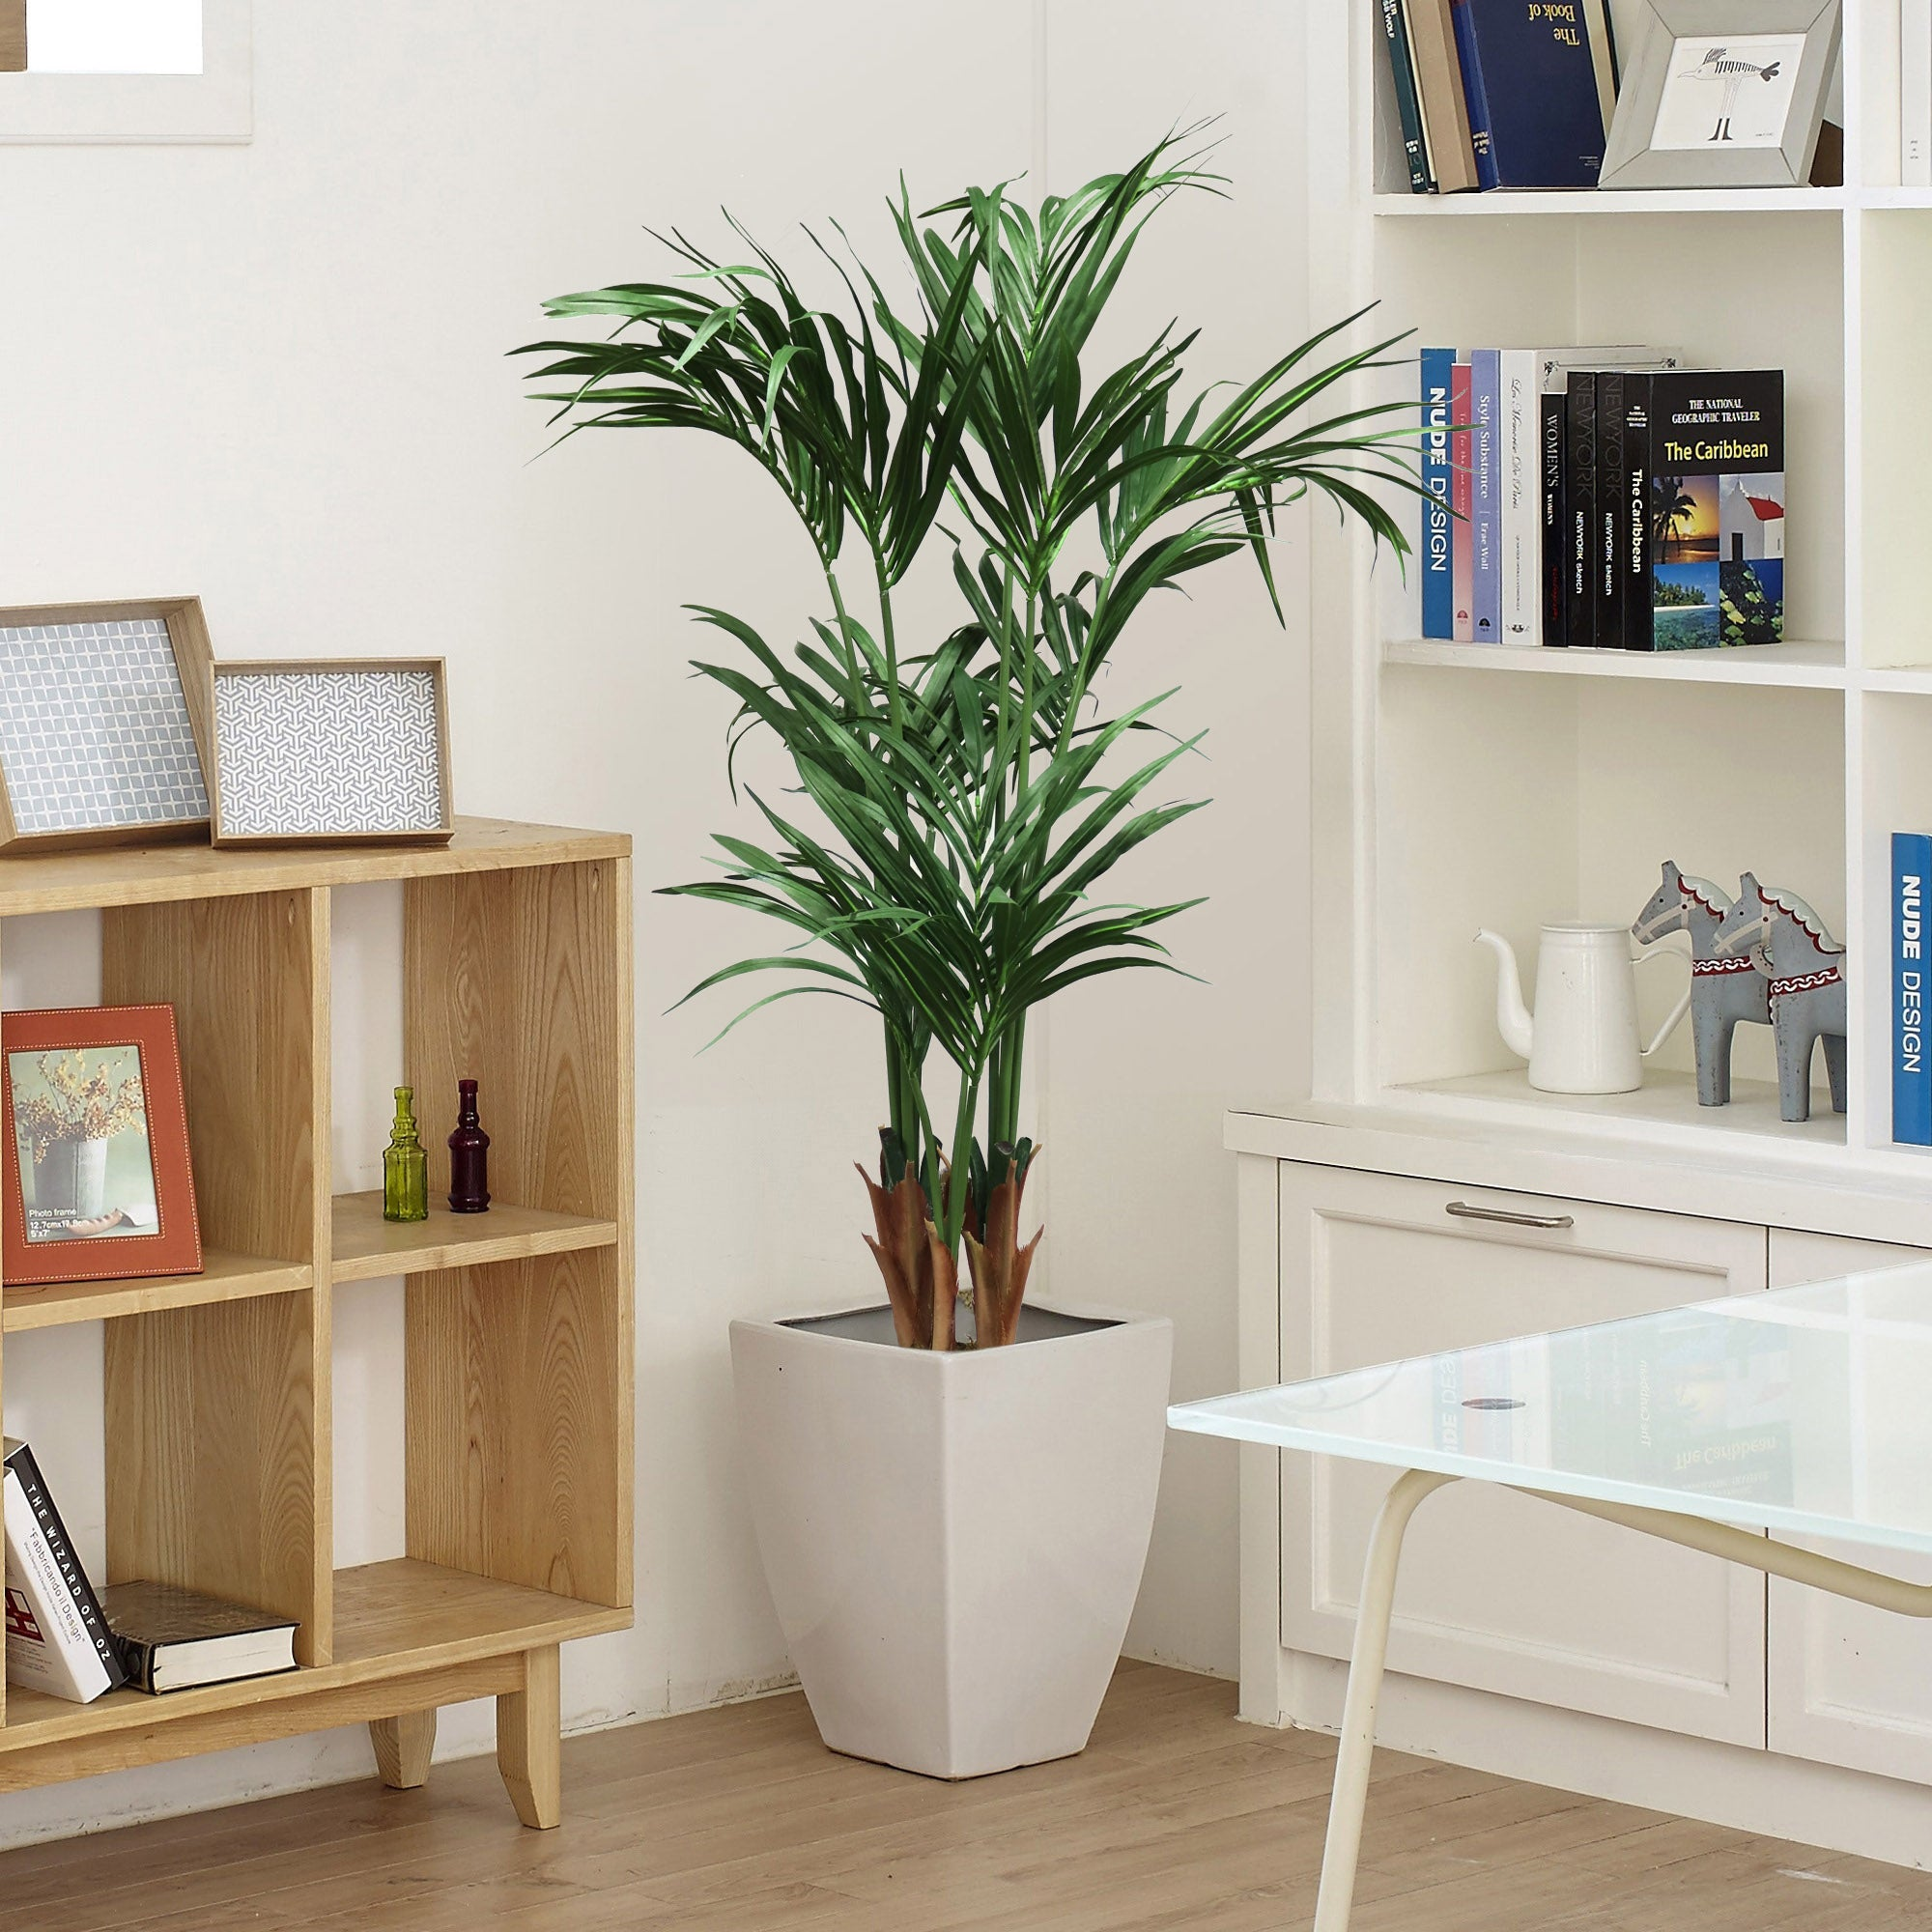 5.5' Areca Palm Tree  in Black Pot